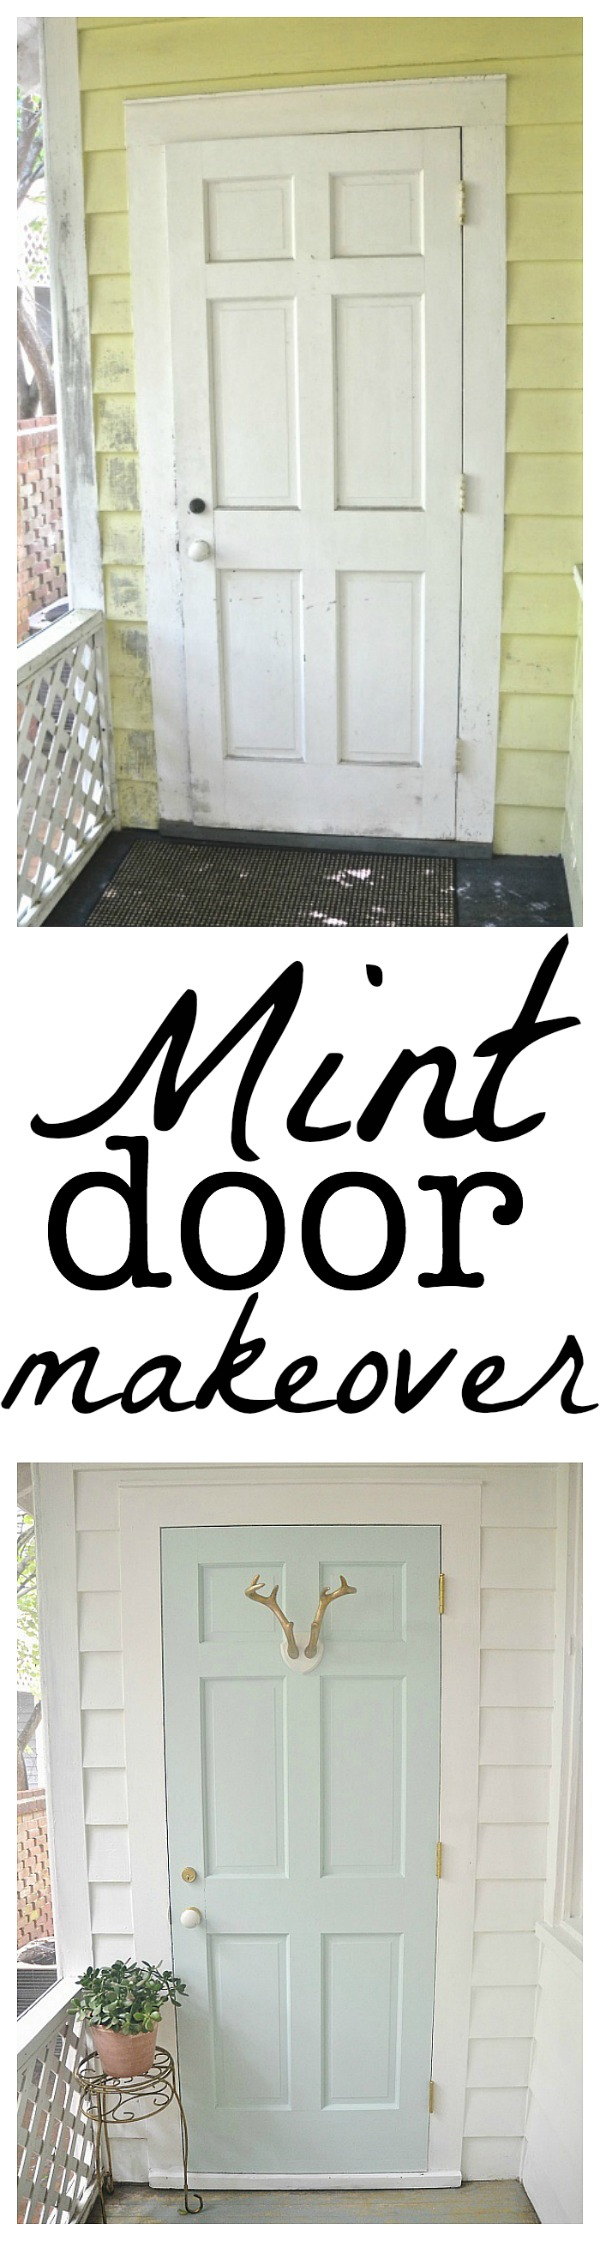 Mint door makeover - Behr Whipped Mint - lizmarieblog.com  sc 1 st  Liz Marie Blog & Whipped Mint Door- Sunroom Makeover - Liz Marie Blog pezcame.com